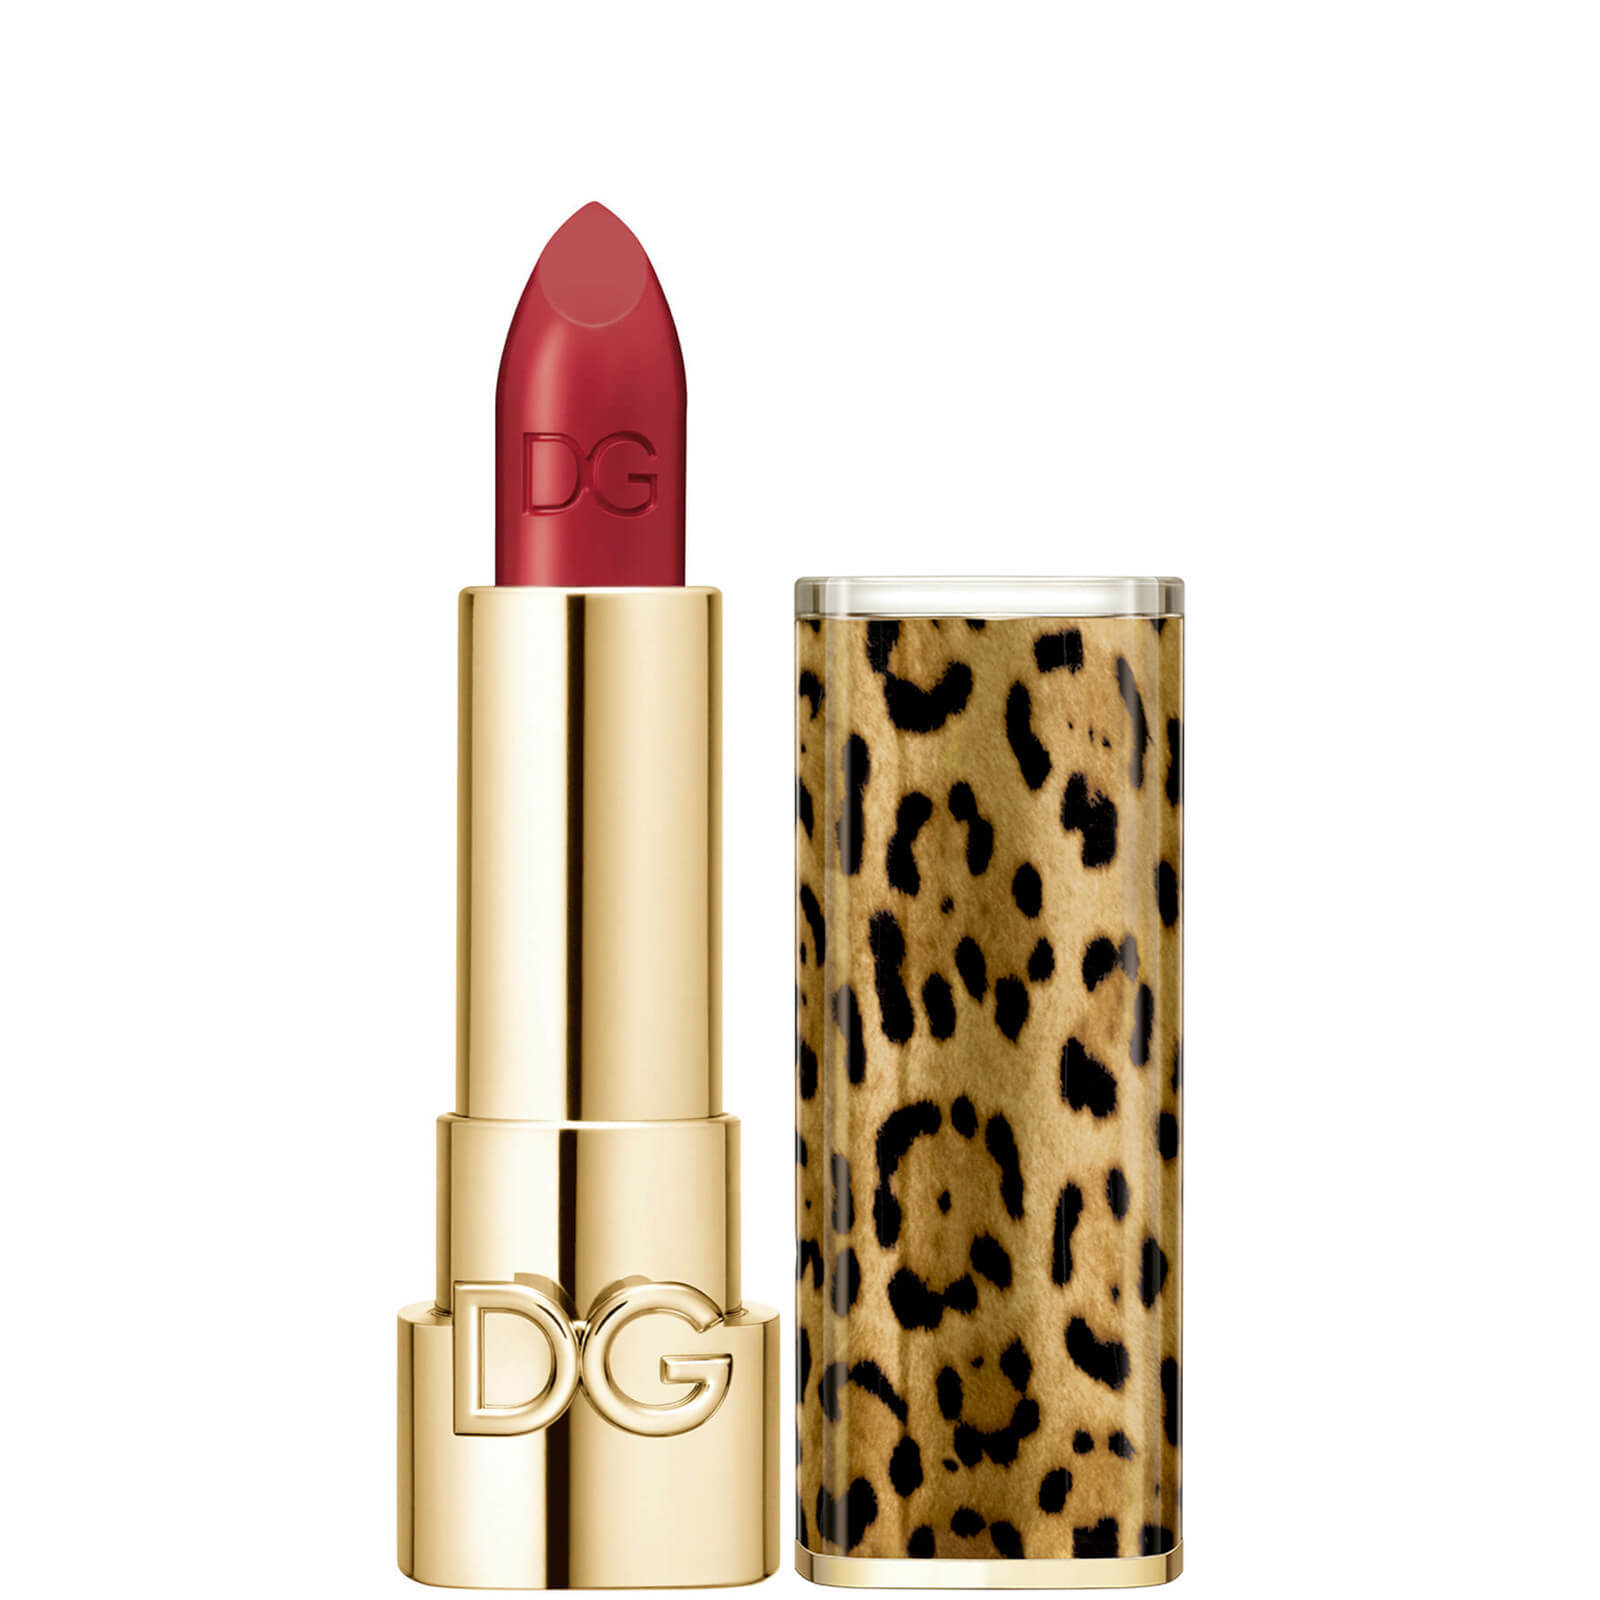 Dolce&Gabbana The Only One Lipstick + Cap (Animalier) (Various Shades) - 650 Iconic Ruby